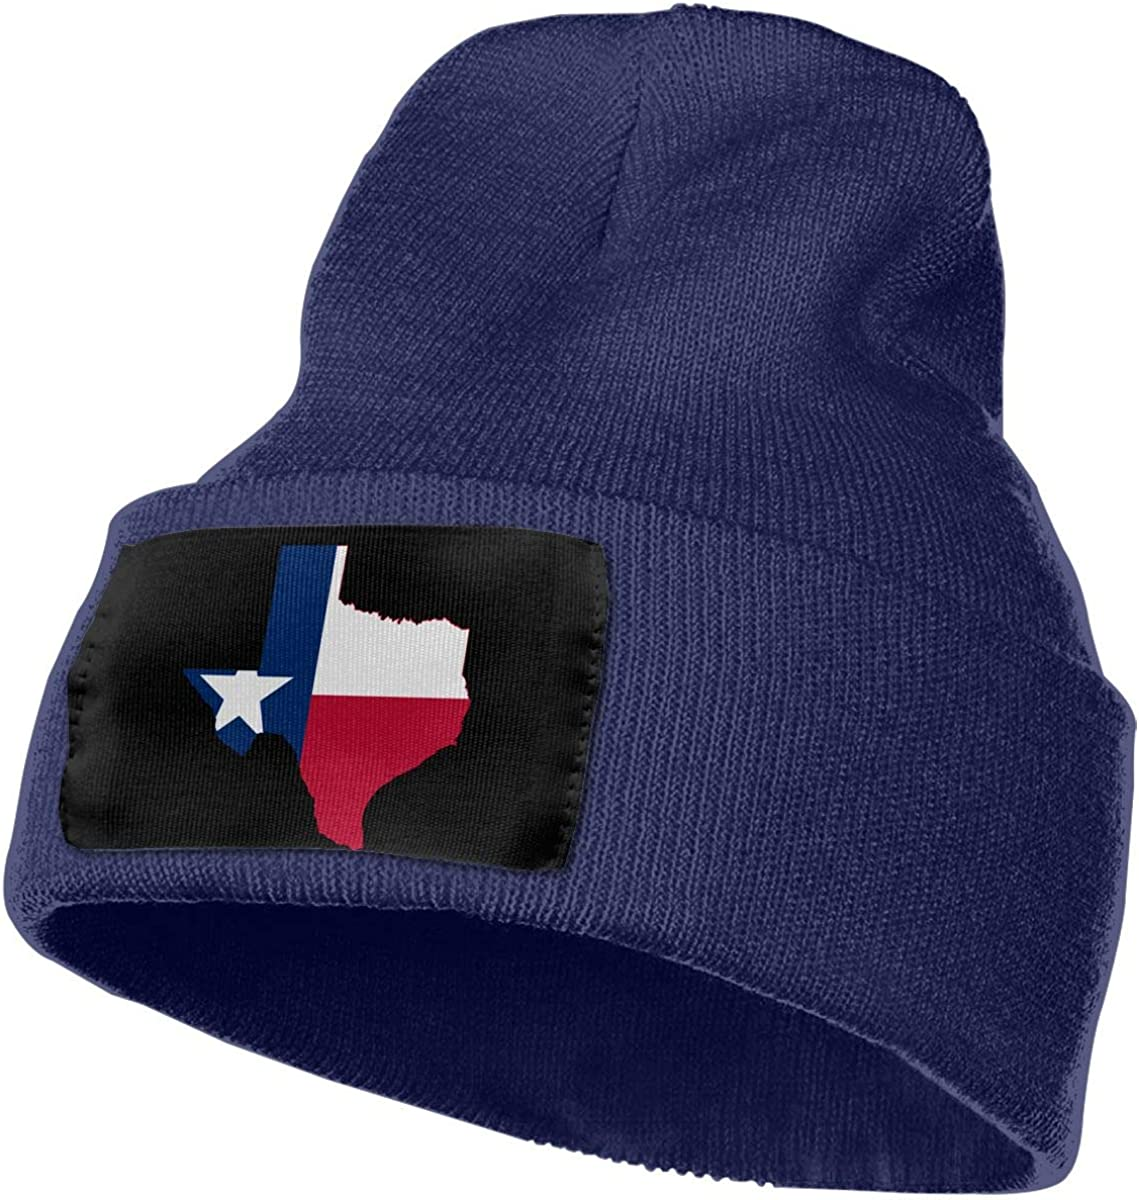 Texas Flag Outline Clipart Soft Skull Beanie WHOO93@Y Mens Womens 100/% Acrylic Knit Hat Cap